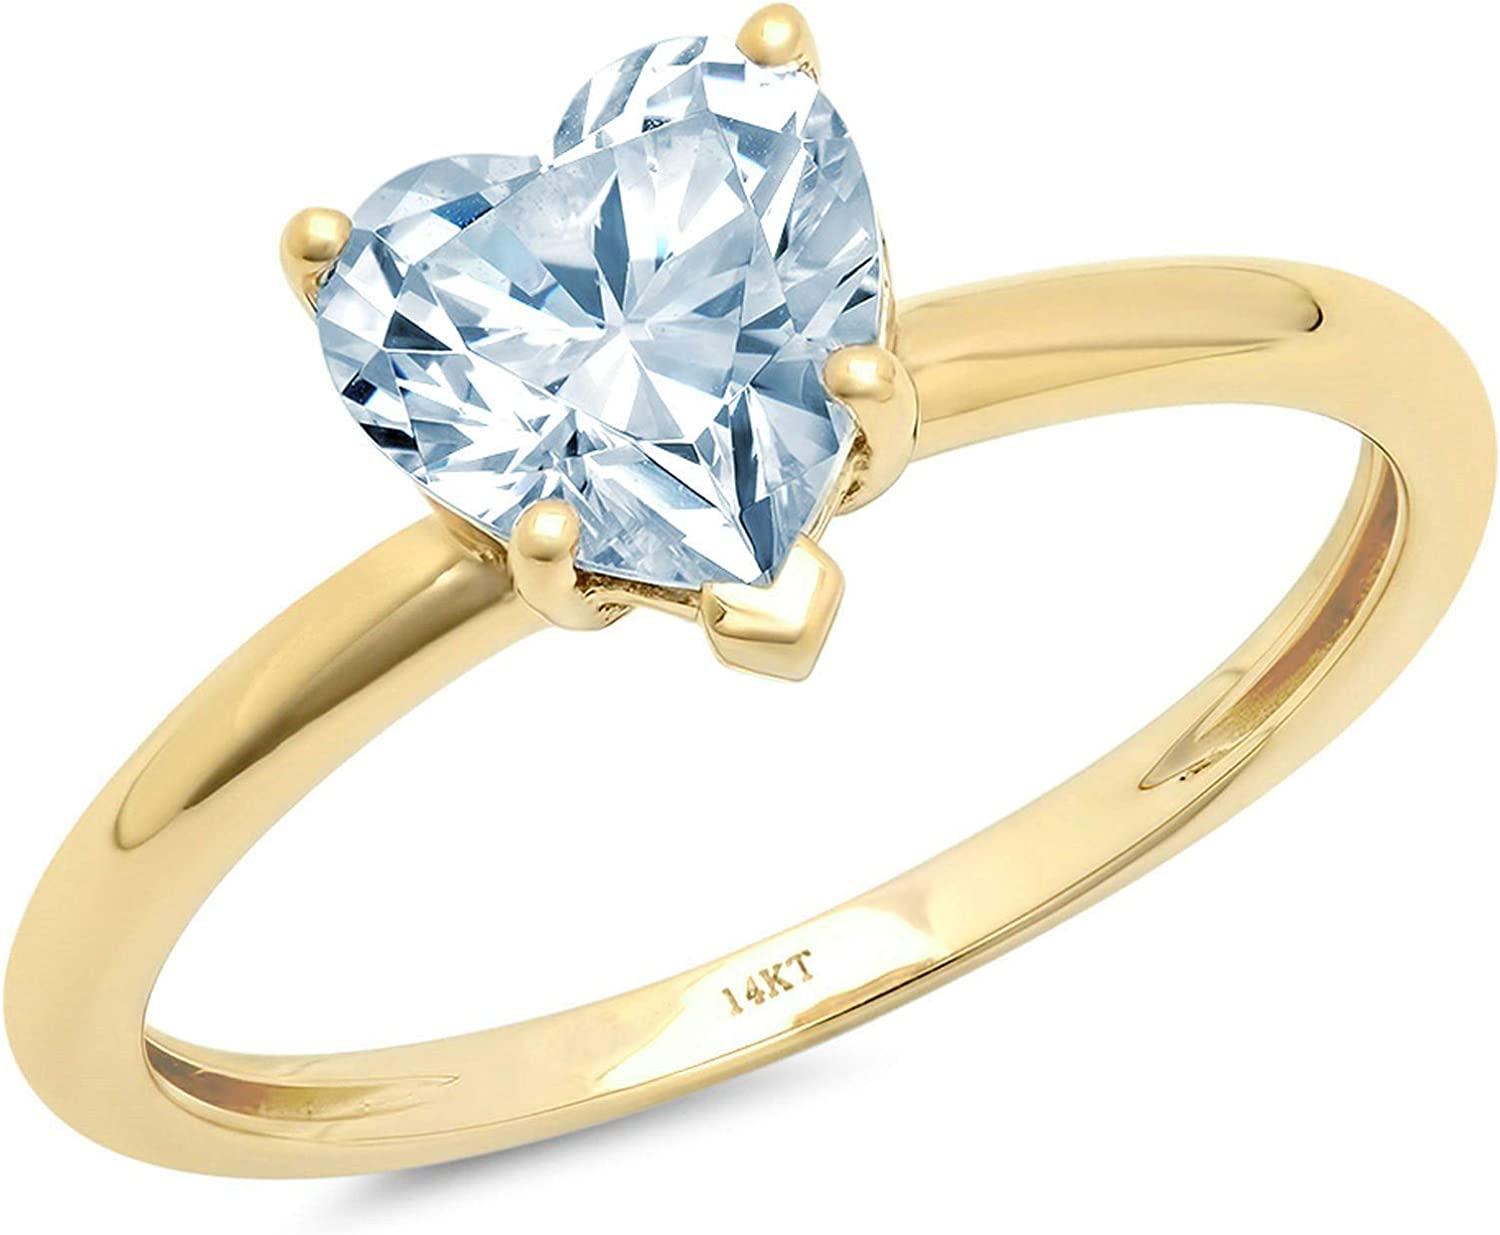 2.0 ct Brilliant Heart Cut Solitaire Natural Swiss Blue Topaz Gem Stone Ideal VVS1 5-Prong Engagement Wedding Bridal Promise Anniversary Ring Solid Real 14k Yellow Gold for Women